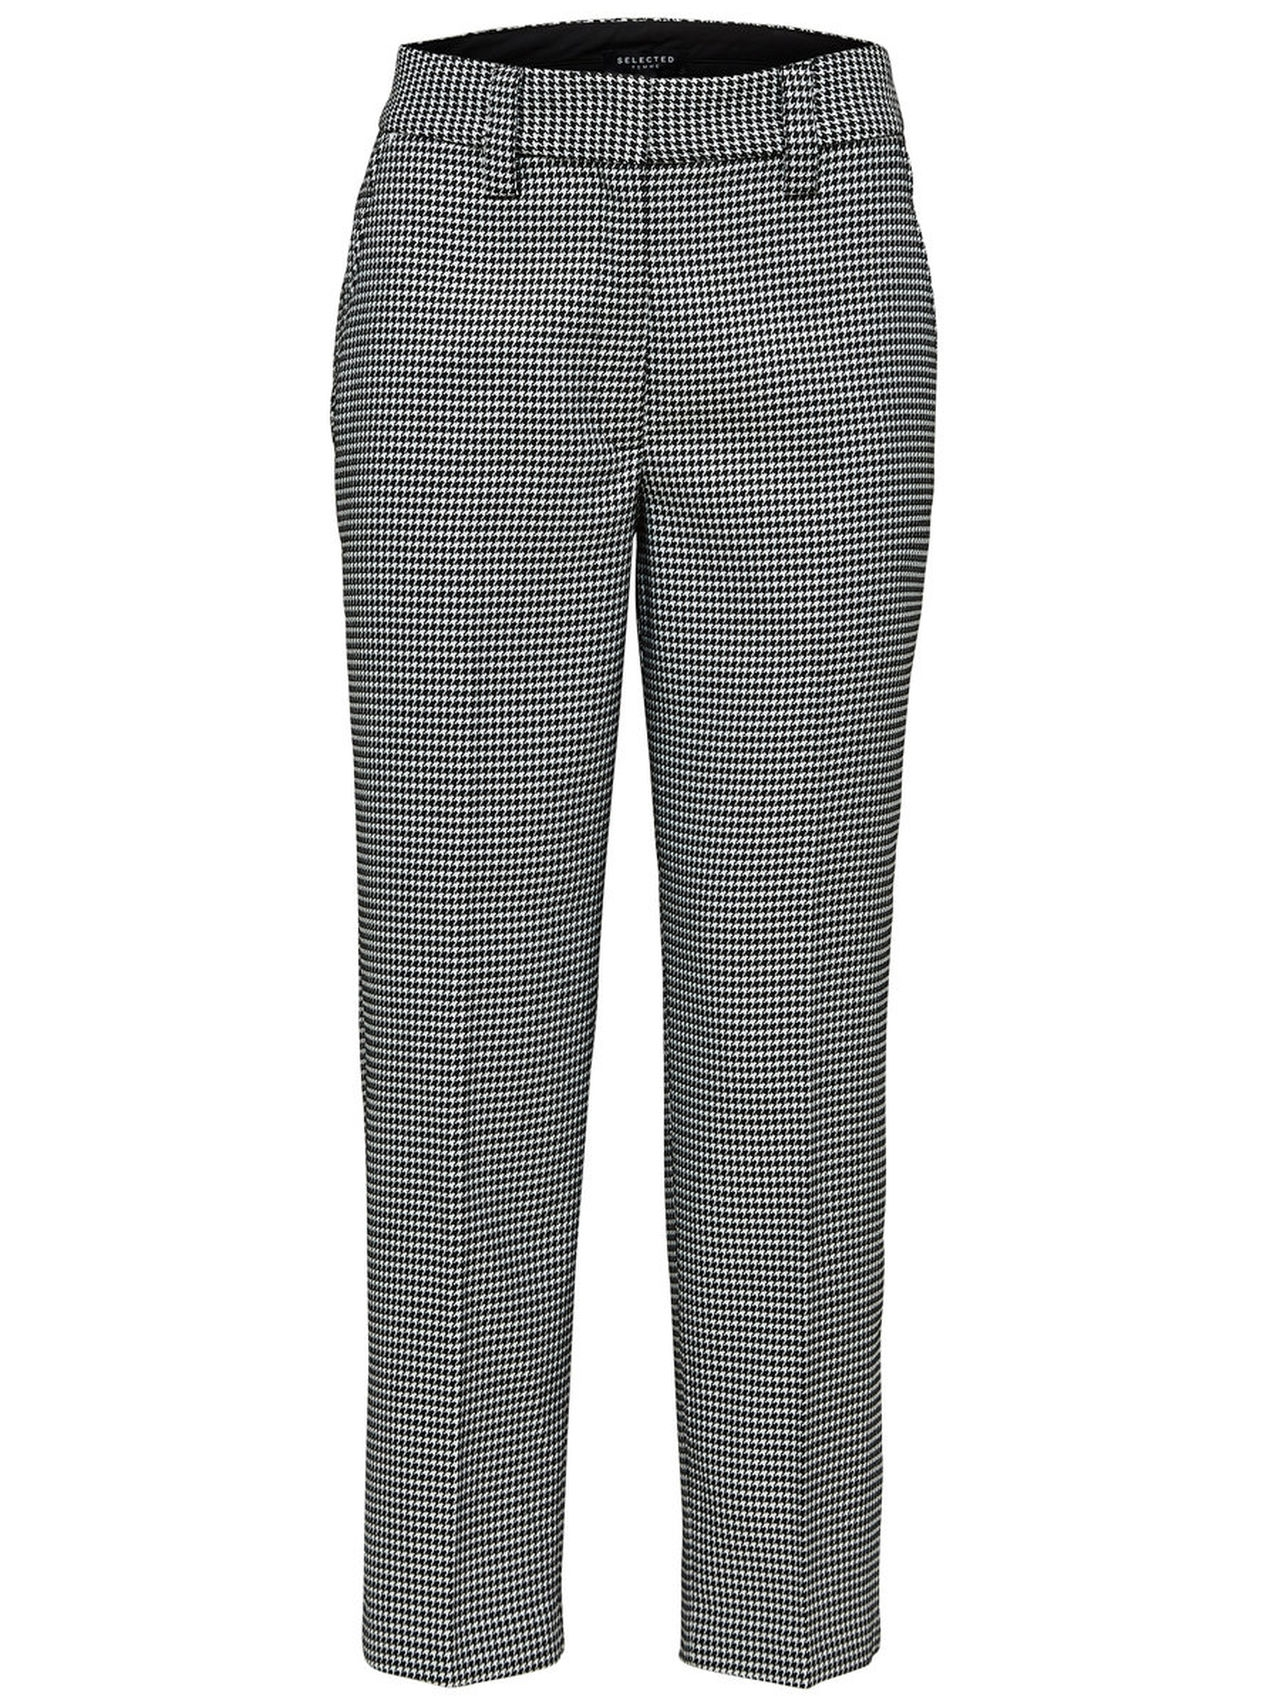 SELECTED Checked – Trousers Kvinna Svart